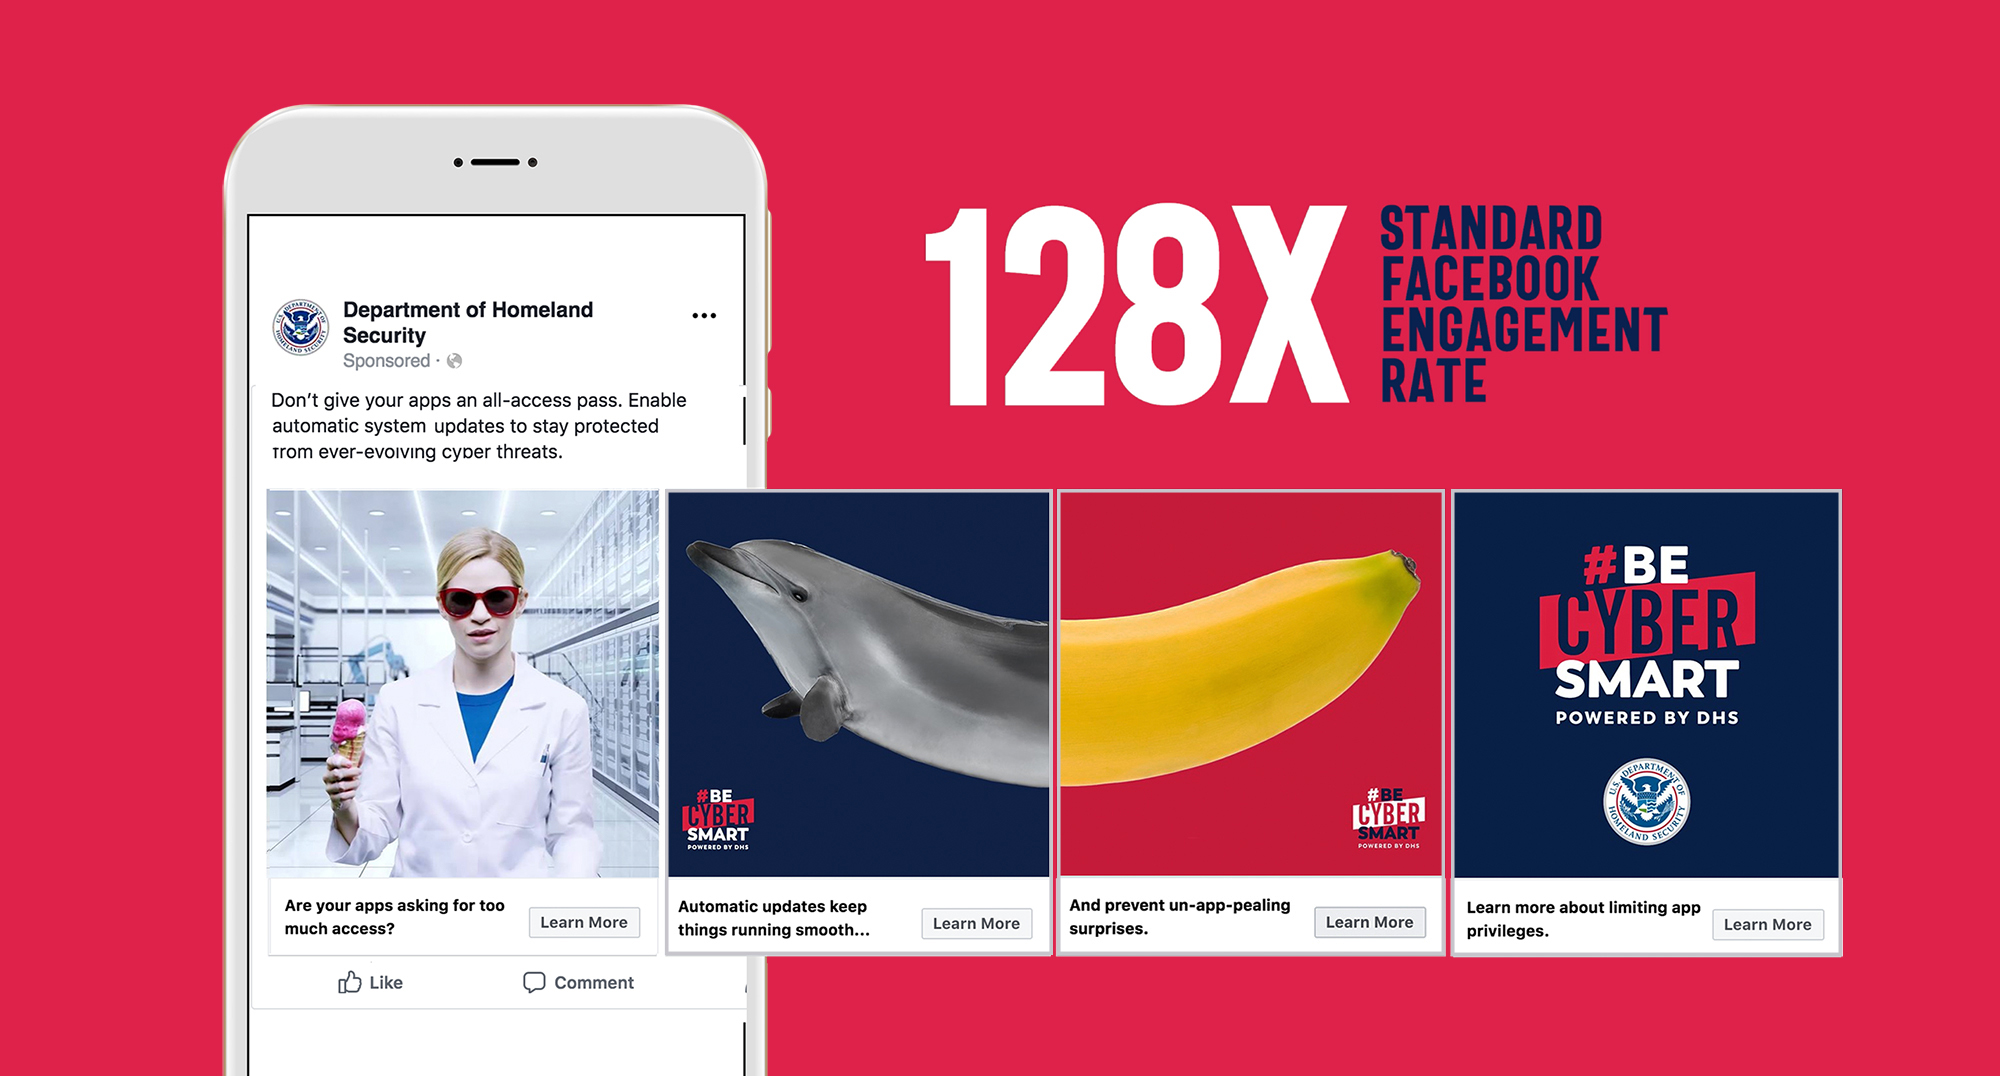 "The headline reads ""128X standard Facebook engagement rate"" next to a mobile phone with an example of a mobile ad for #BeCyberSmart."